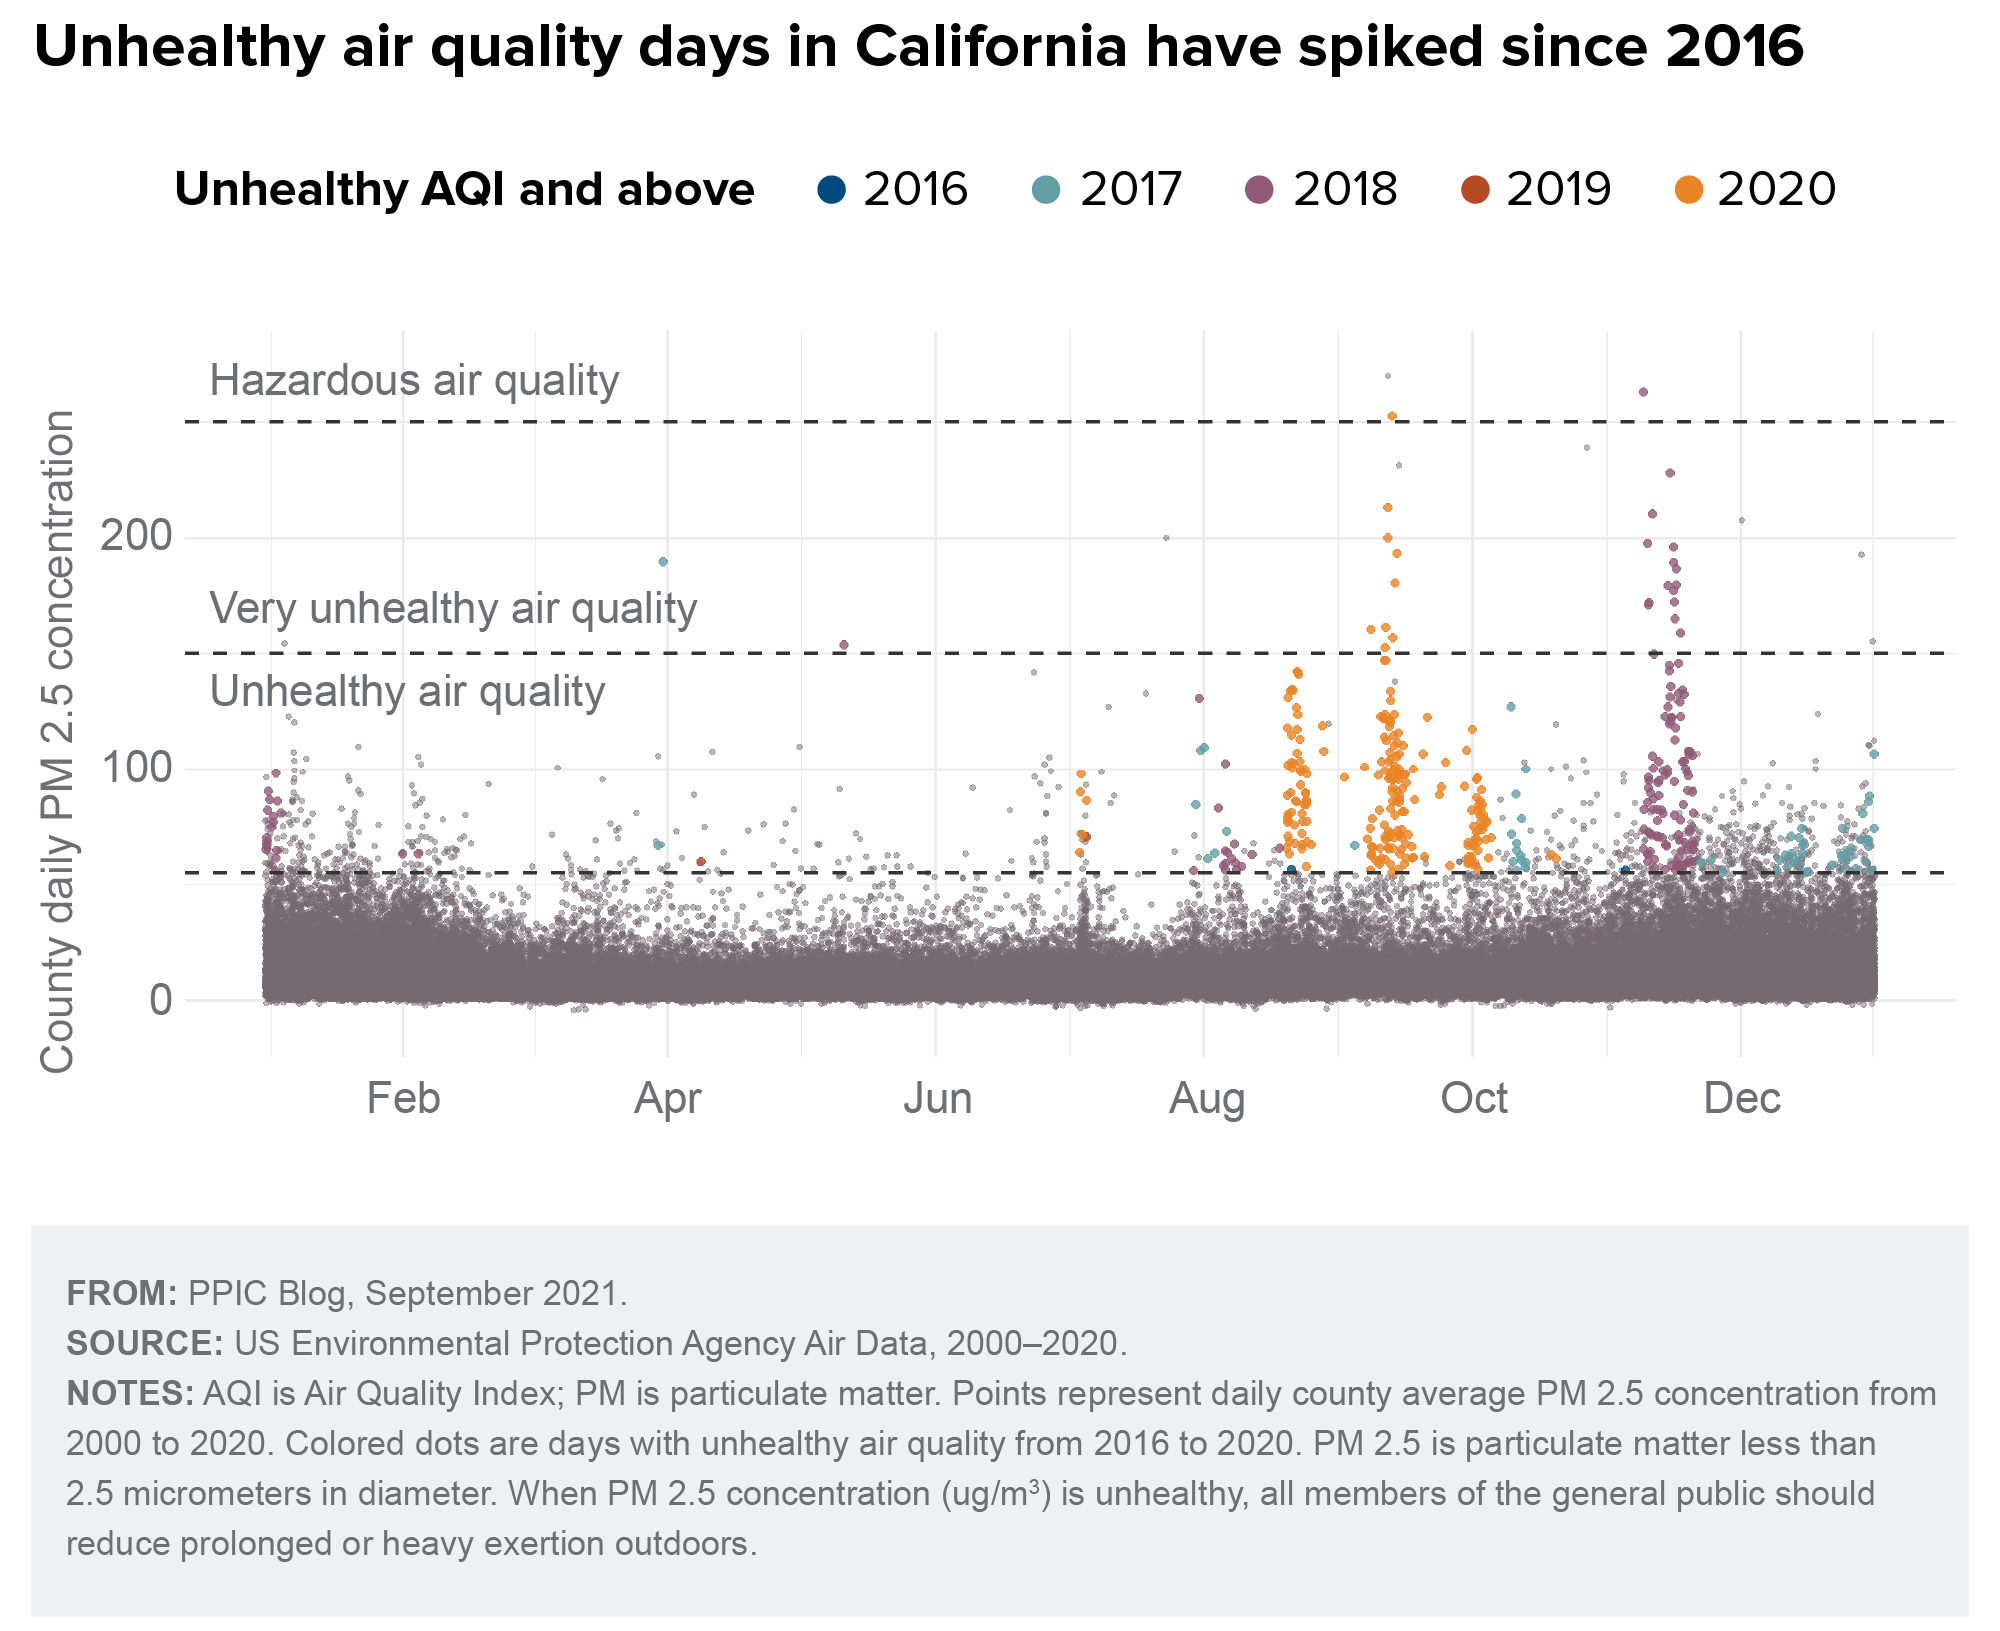 figure - Unhealthy air quality days in California have spiked since 2016